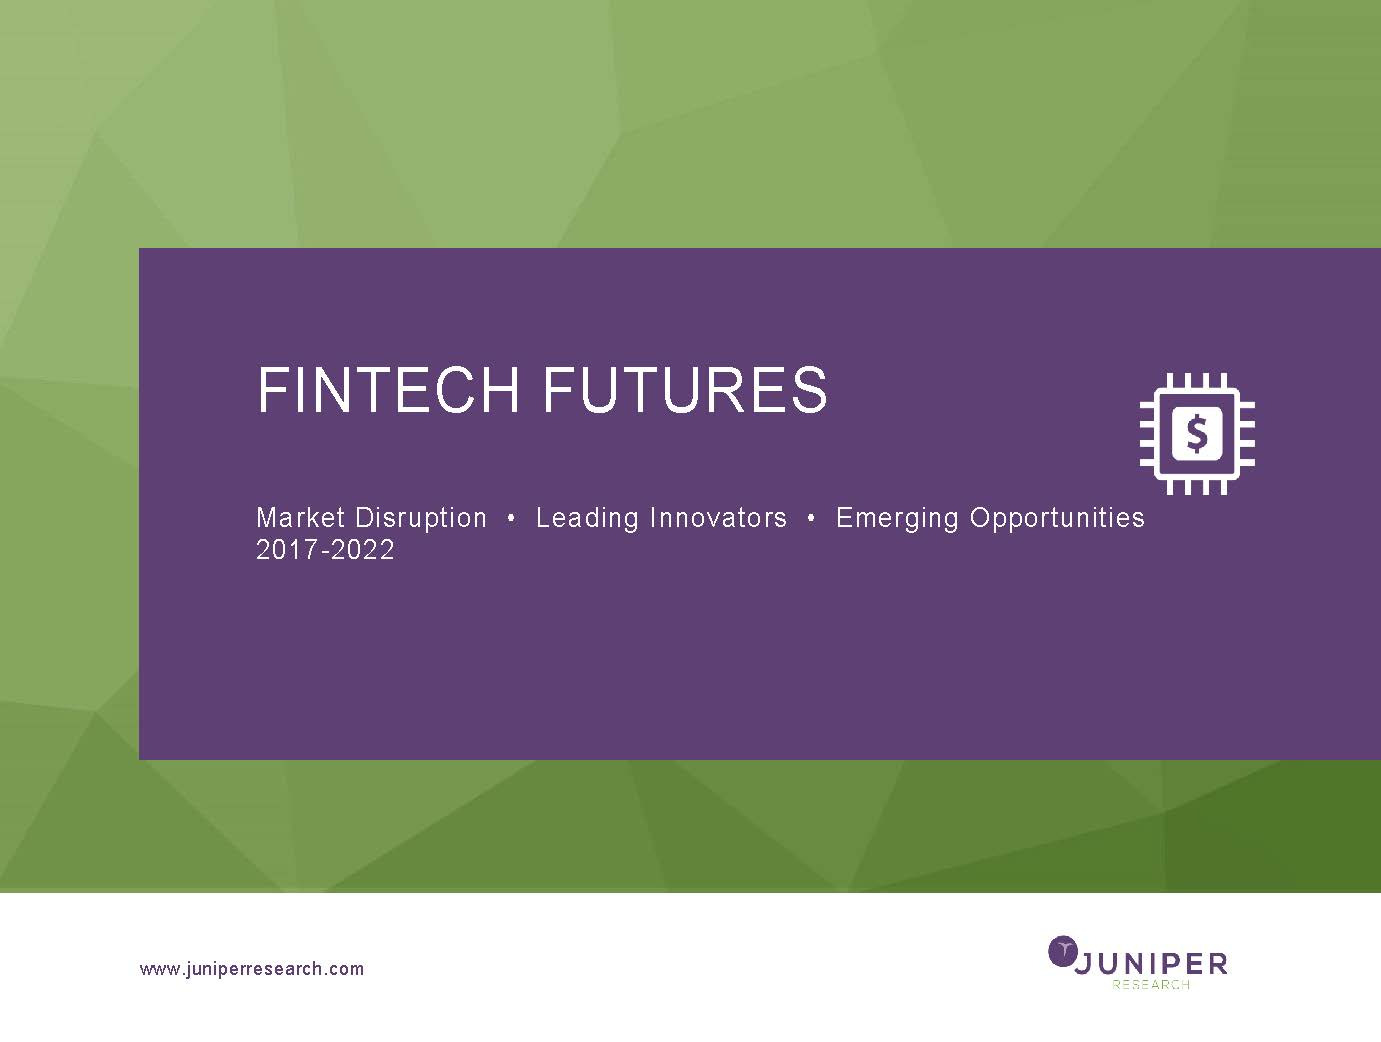 Fintech Futures - Deep Dive Strategy & Competition 2017-2022